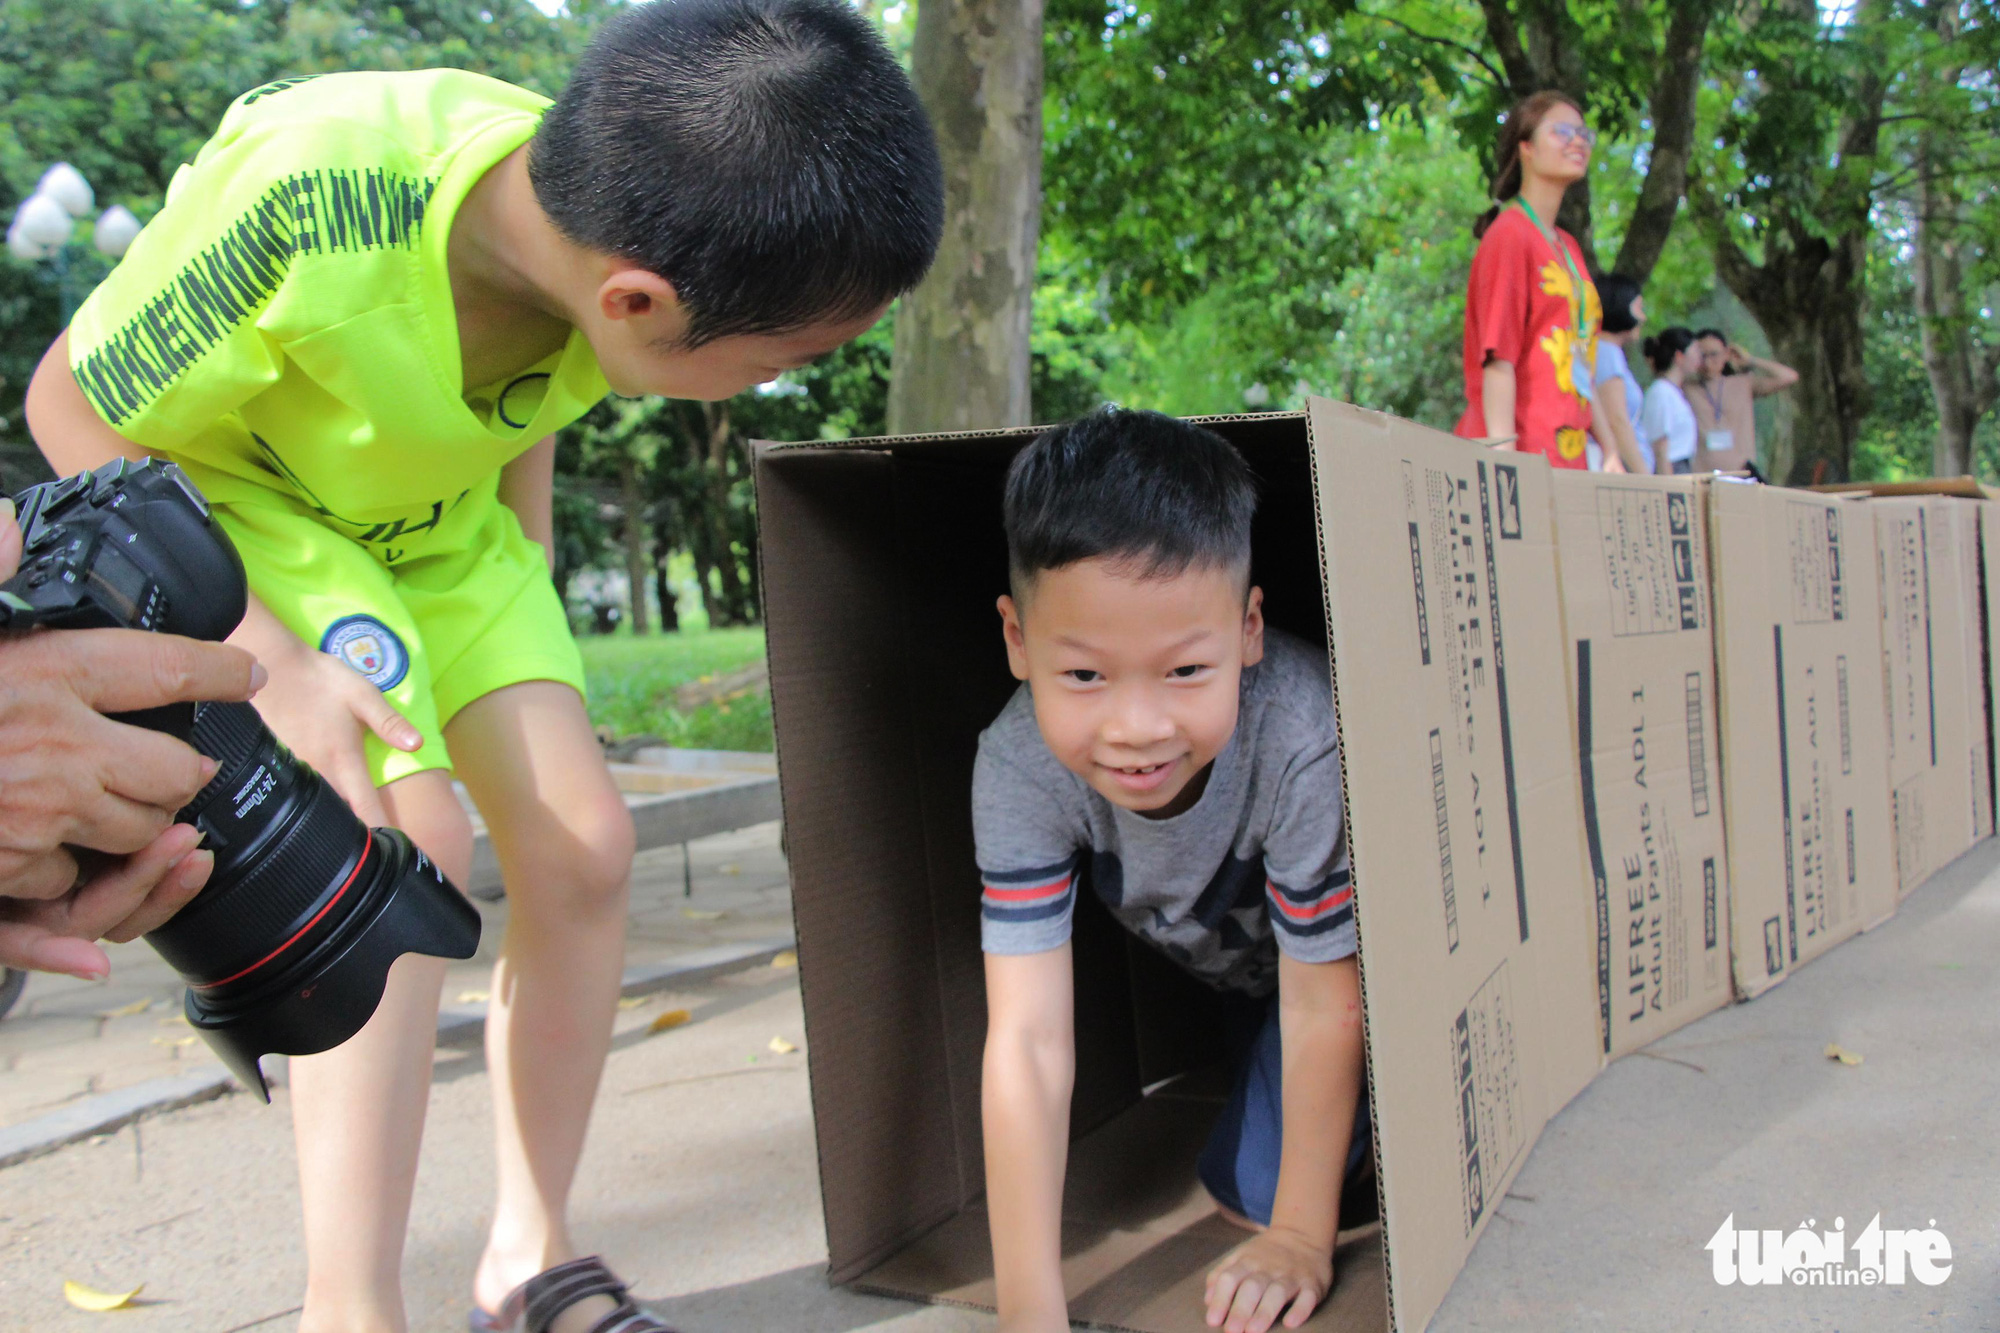 A boy plays with an obstacle course made of carton boxes at the 'Kingdom of Recycled Materials' event in Hanoi, Vietnam, May 31, 2020. Photo: Ha Thanh / Tuoi Tre